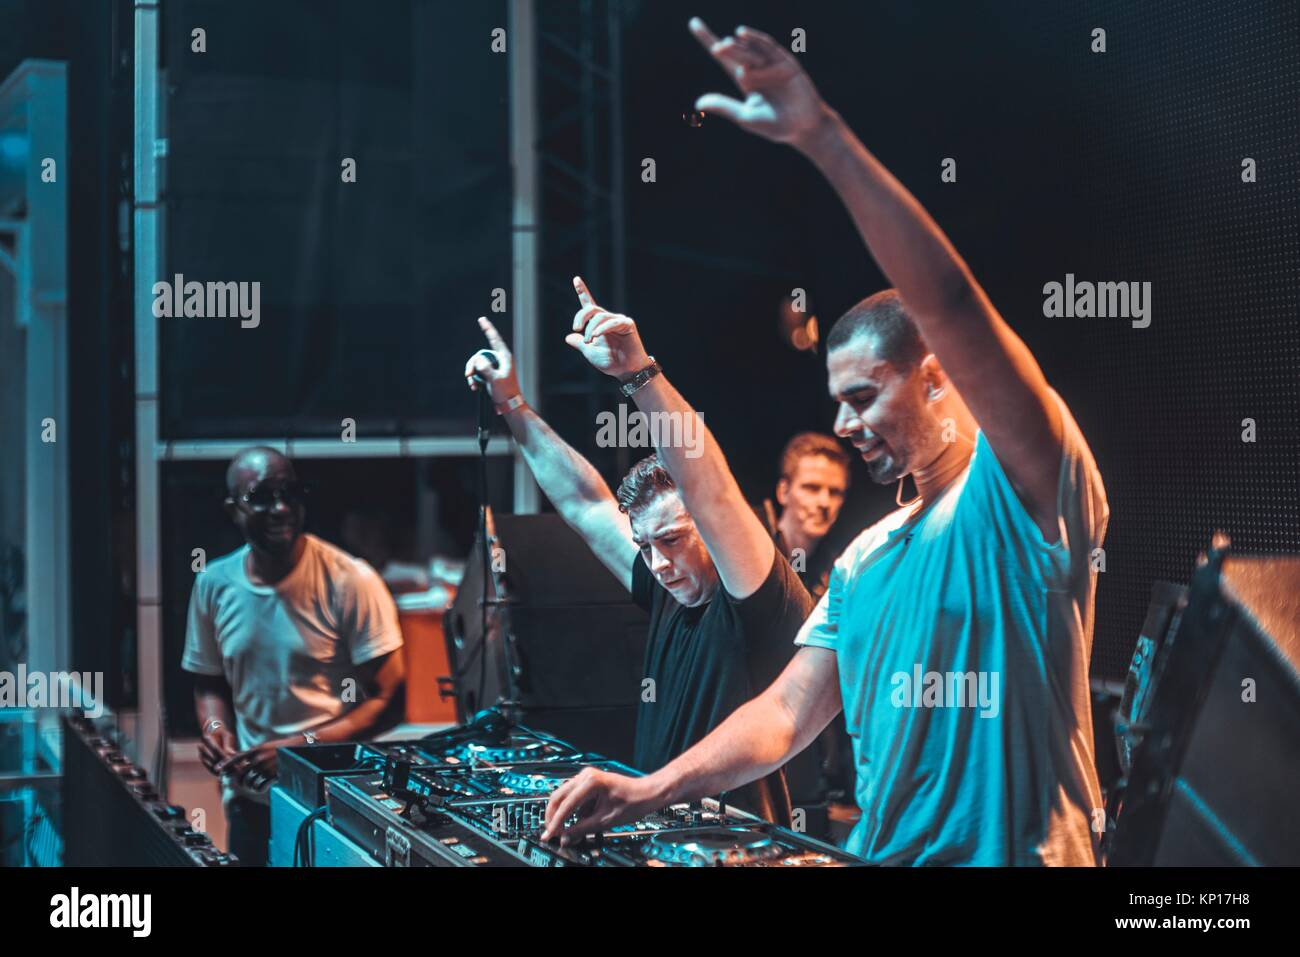 Dj hardwell b2b afrojack at music festival starbeach beachflirt dj hardwell b2b afrojack at music festival starbeach beachflirt dress in white party on 17 july 2017 in hersonissos crete greece they played thecheapjerseys Gallery